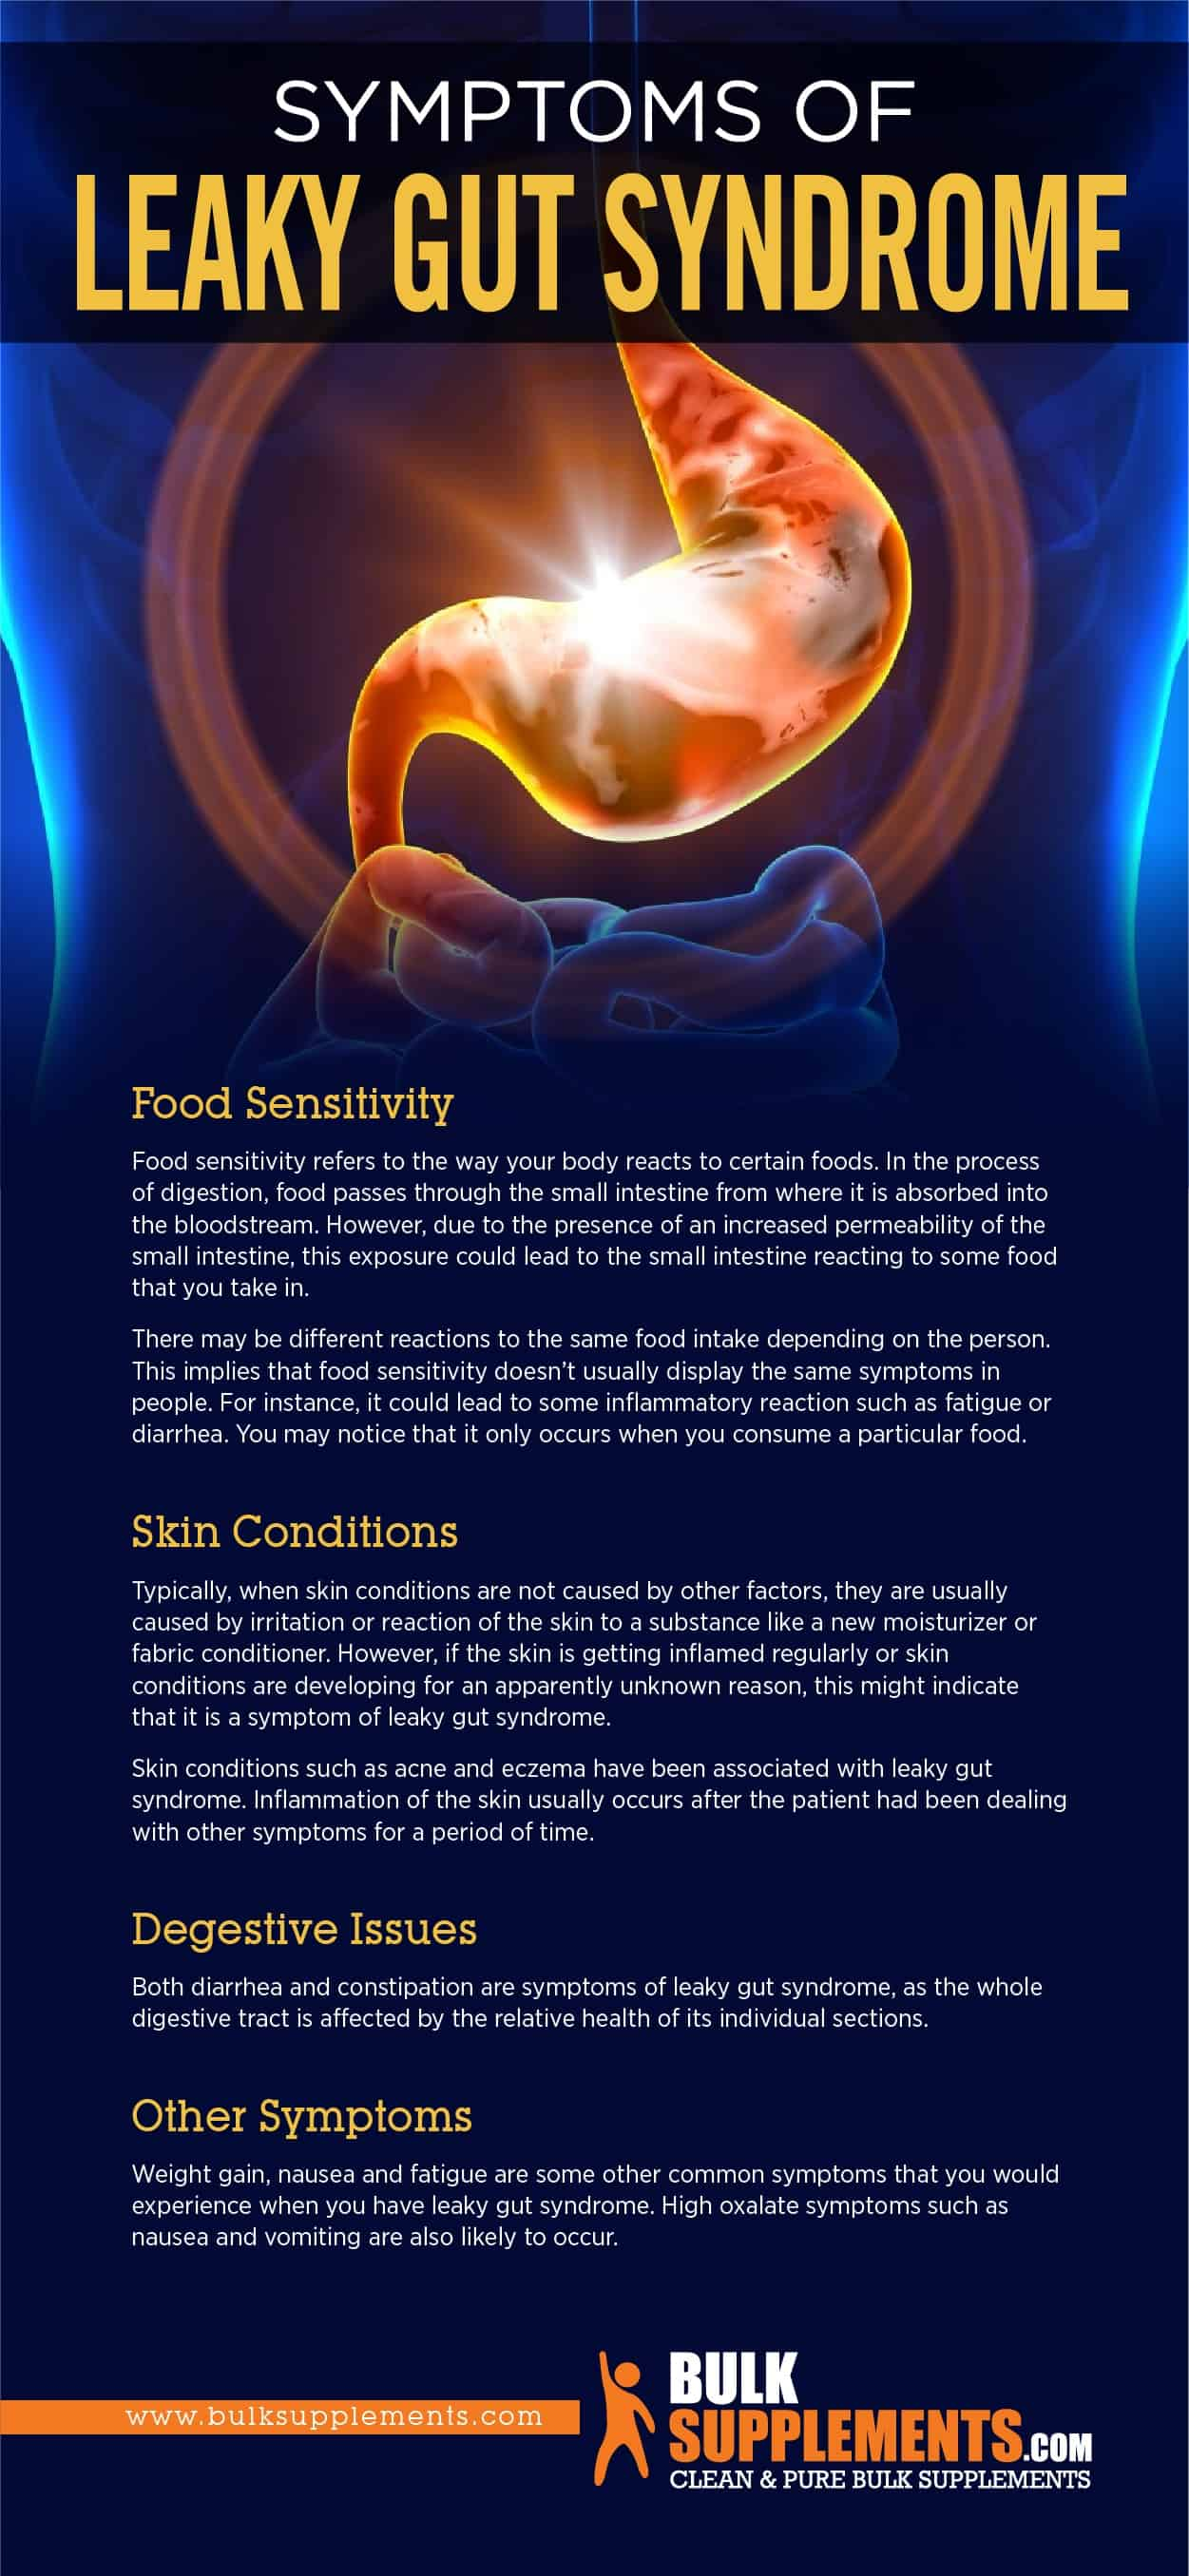 Symptoms of Leaky Gut Syndrome